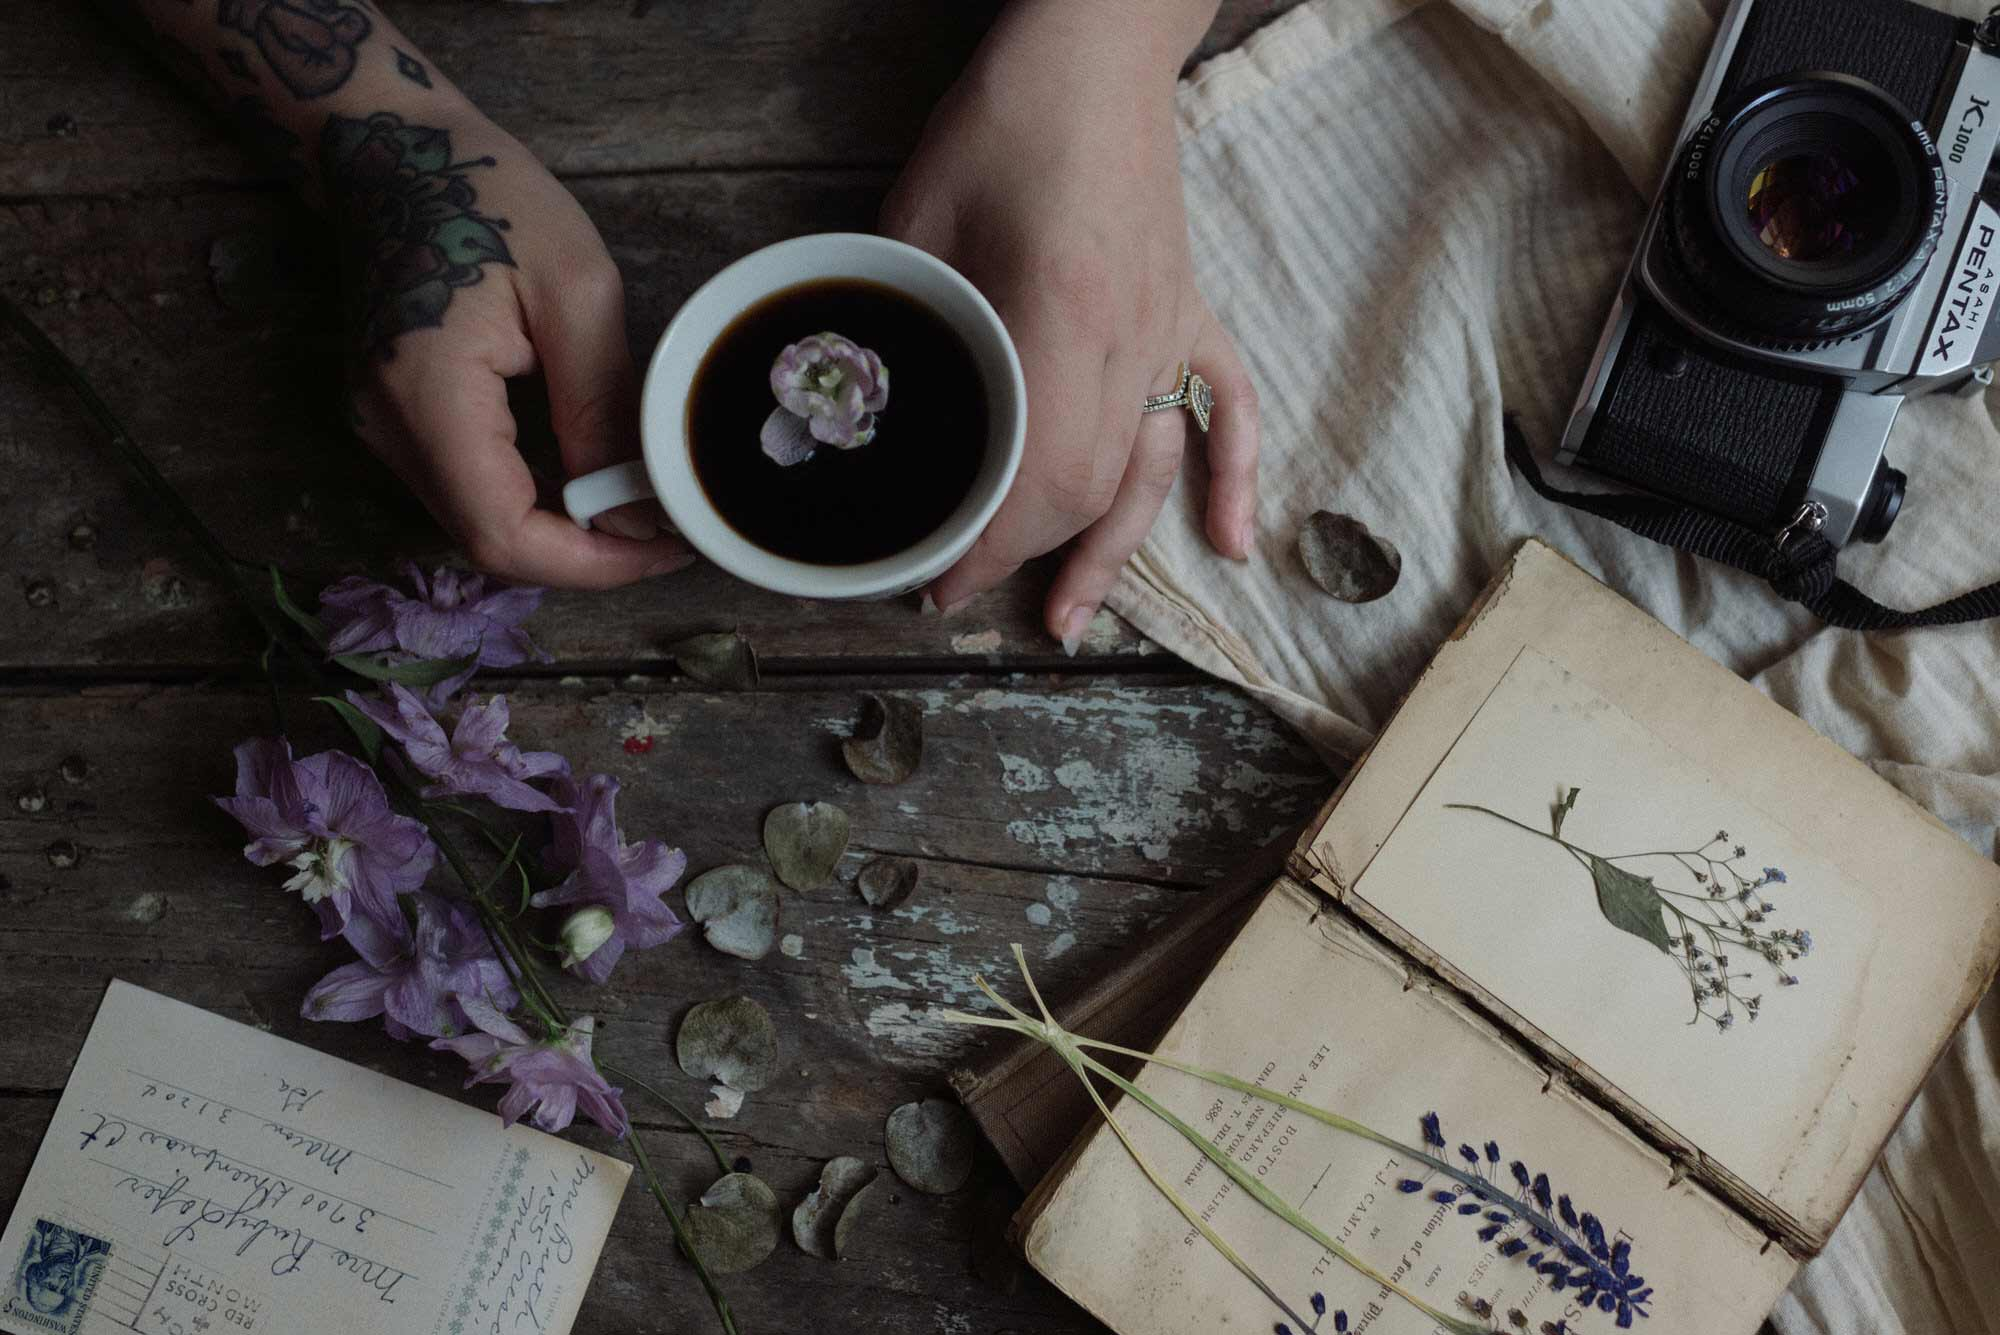 tattooed hand holding a cup of coffee with a flower in it